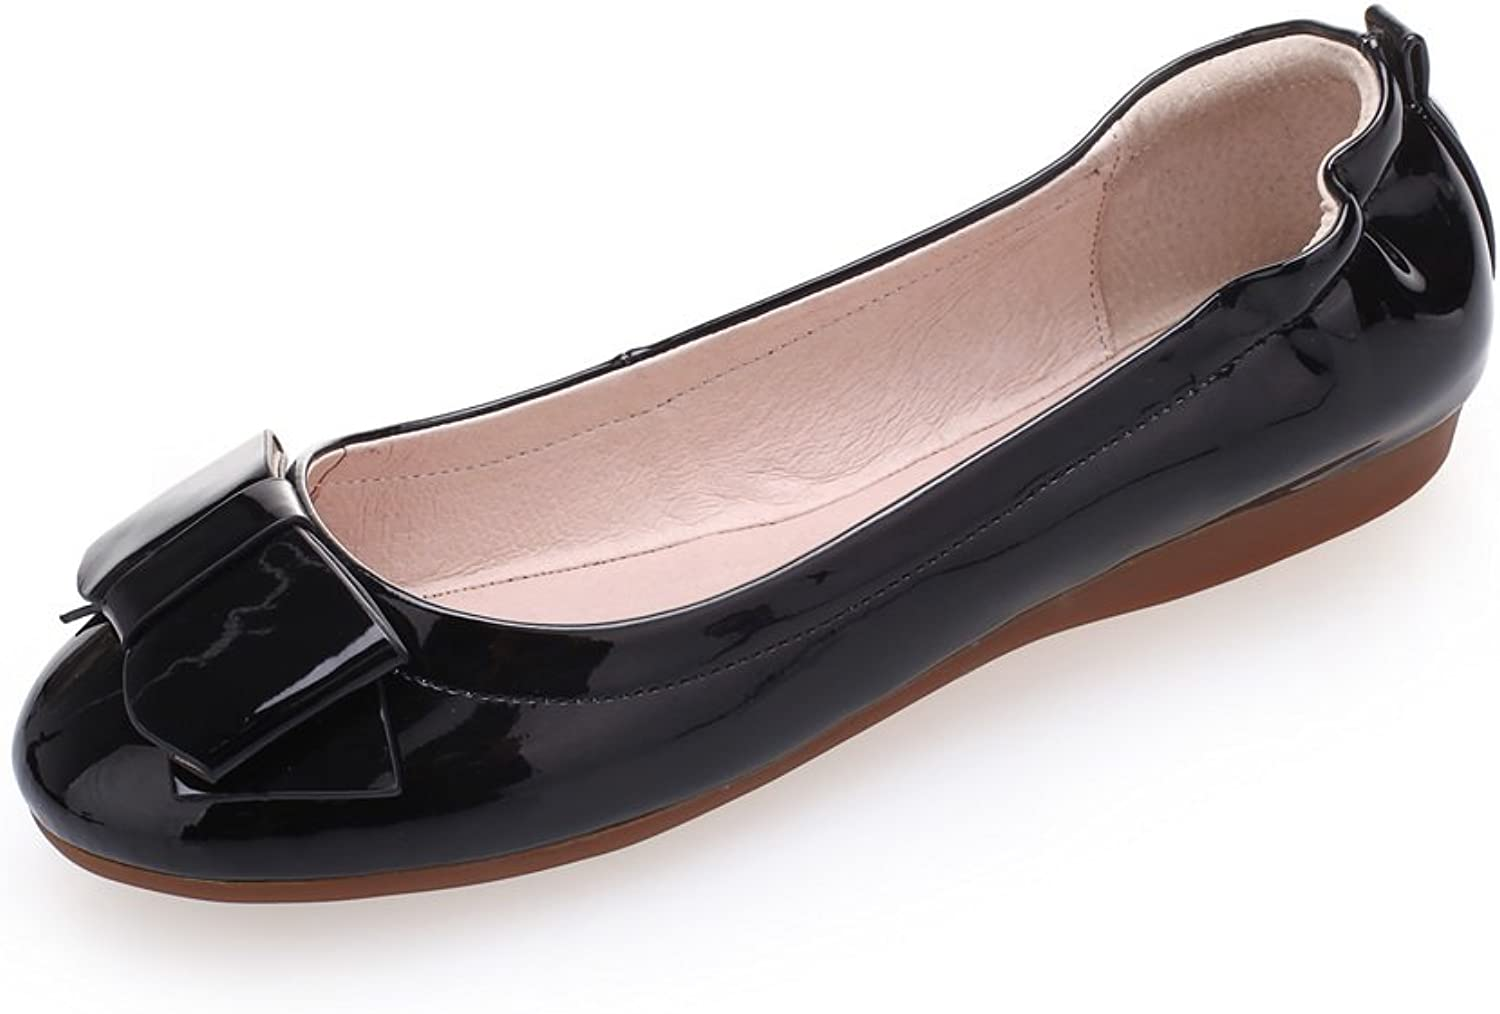 1TO9 Womens Bowknot Round Toe Outdoor Black Patent Leather Pumps-shoes - 5 B(M) US